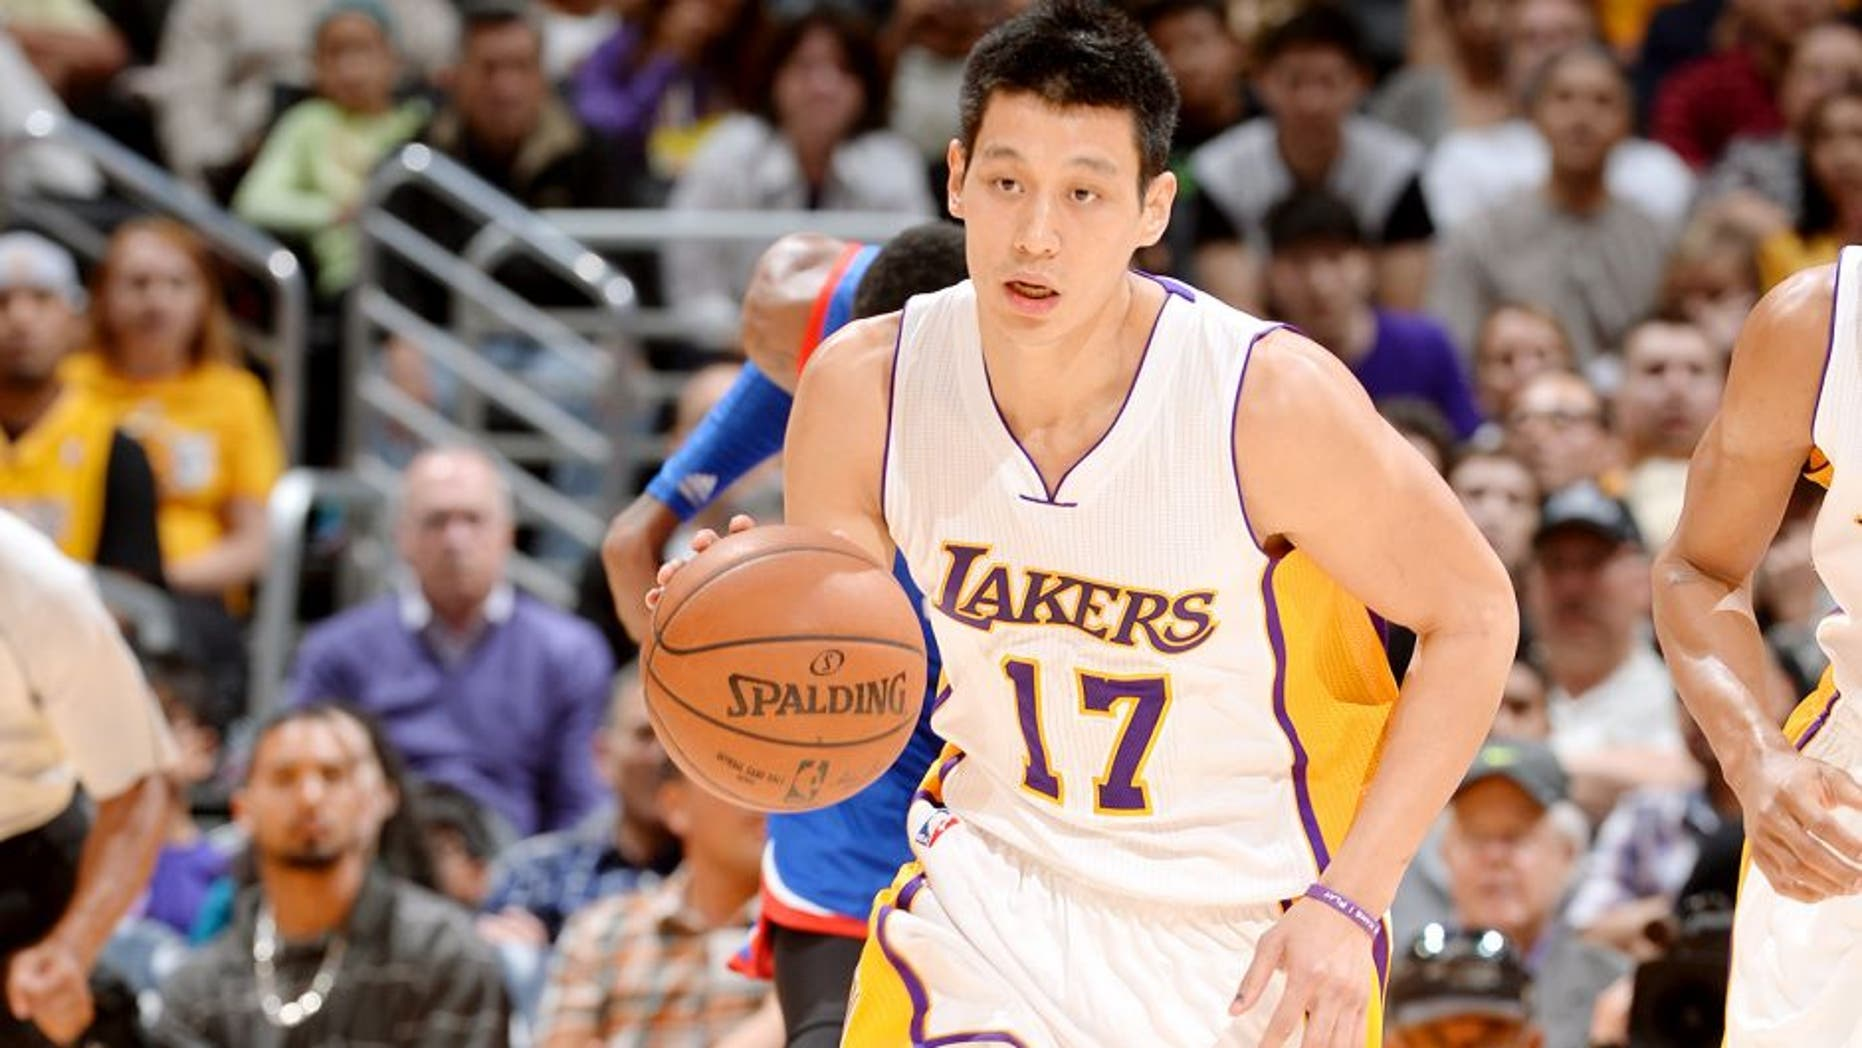 LOS ANGELES, CA - MARCH 22: Jeremy Lin #17 of the Los Angeles Lakers brings the ball up court against the Philadelphia 76ers on March 22, 2015 at Staples Center in Los Angeles, California. NOTE TO USER: User expressly acknowledges and agrees that, by downloading and or using this Photograph, user is consenting to the terms and conditions of the Getty Images License Agreement. Mandatory Copyright Notice: Copyright 2015 NBAE (Photo by Andrew D. Bernstein/NBAE via Getty Images)